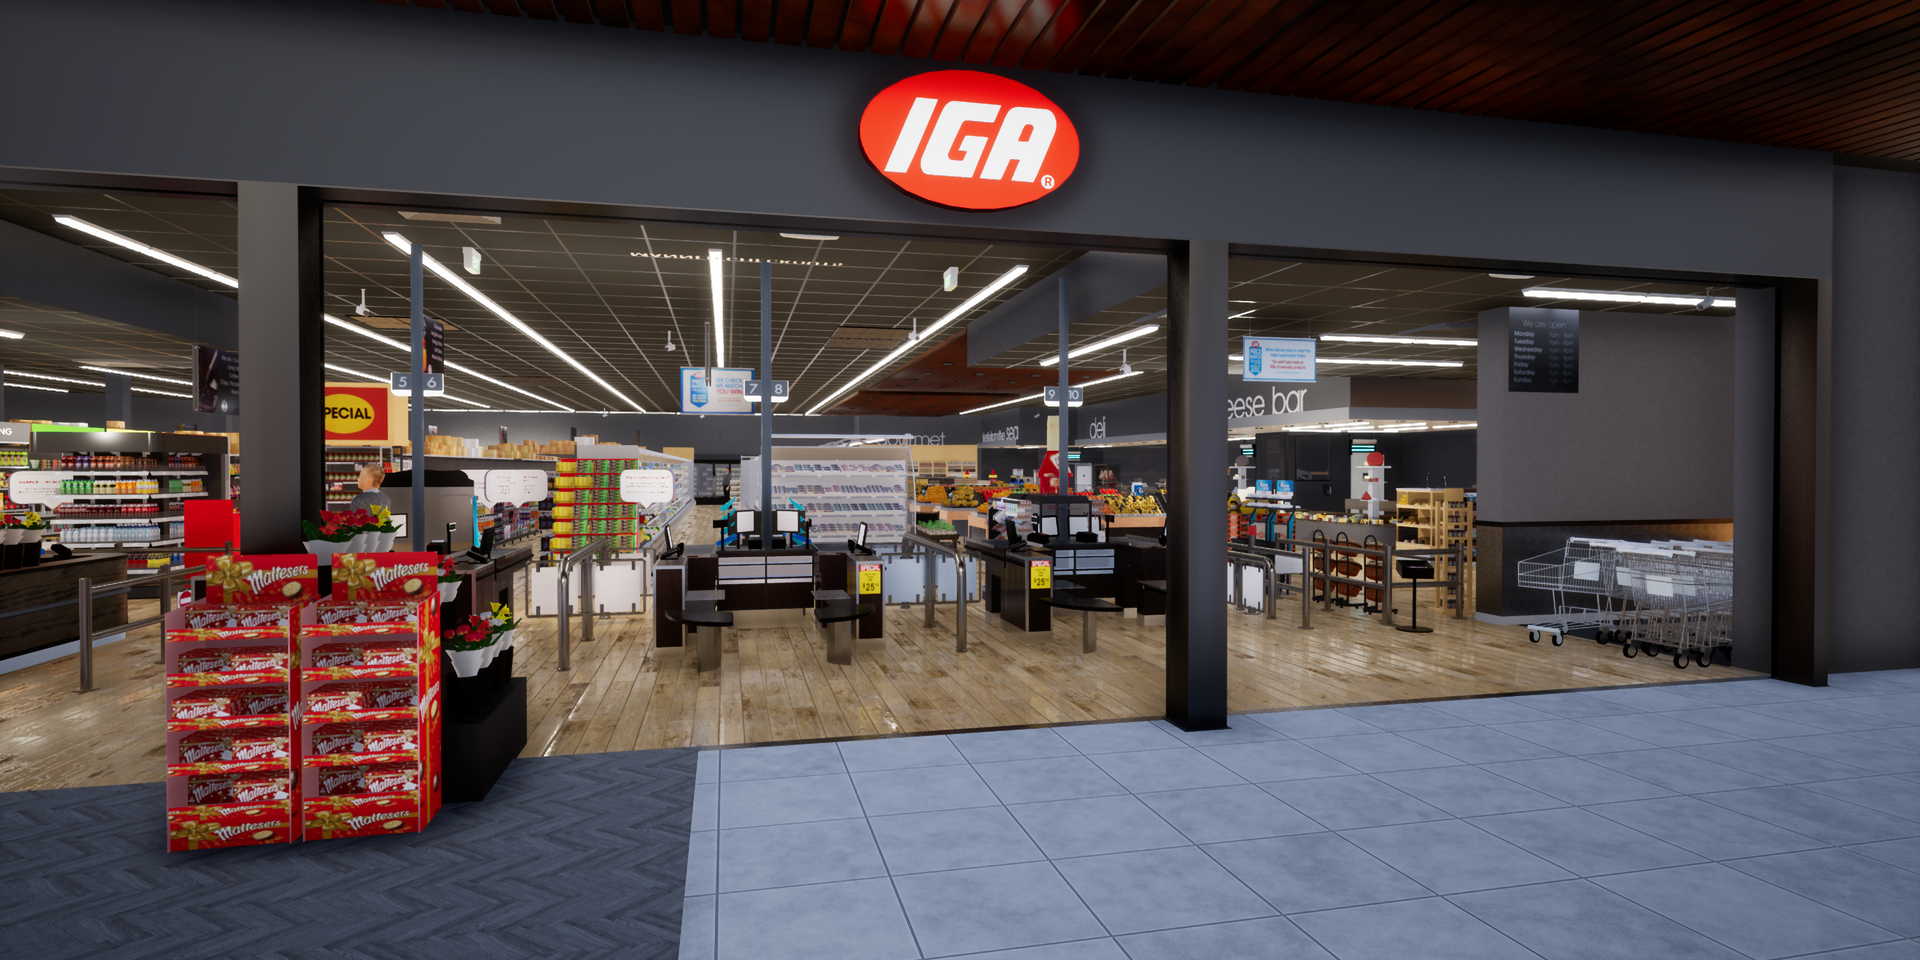 Virtual generic IGA store